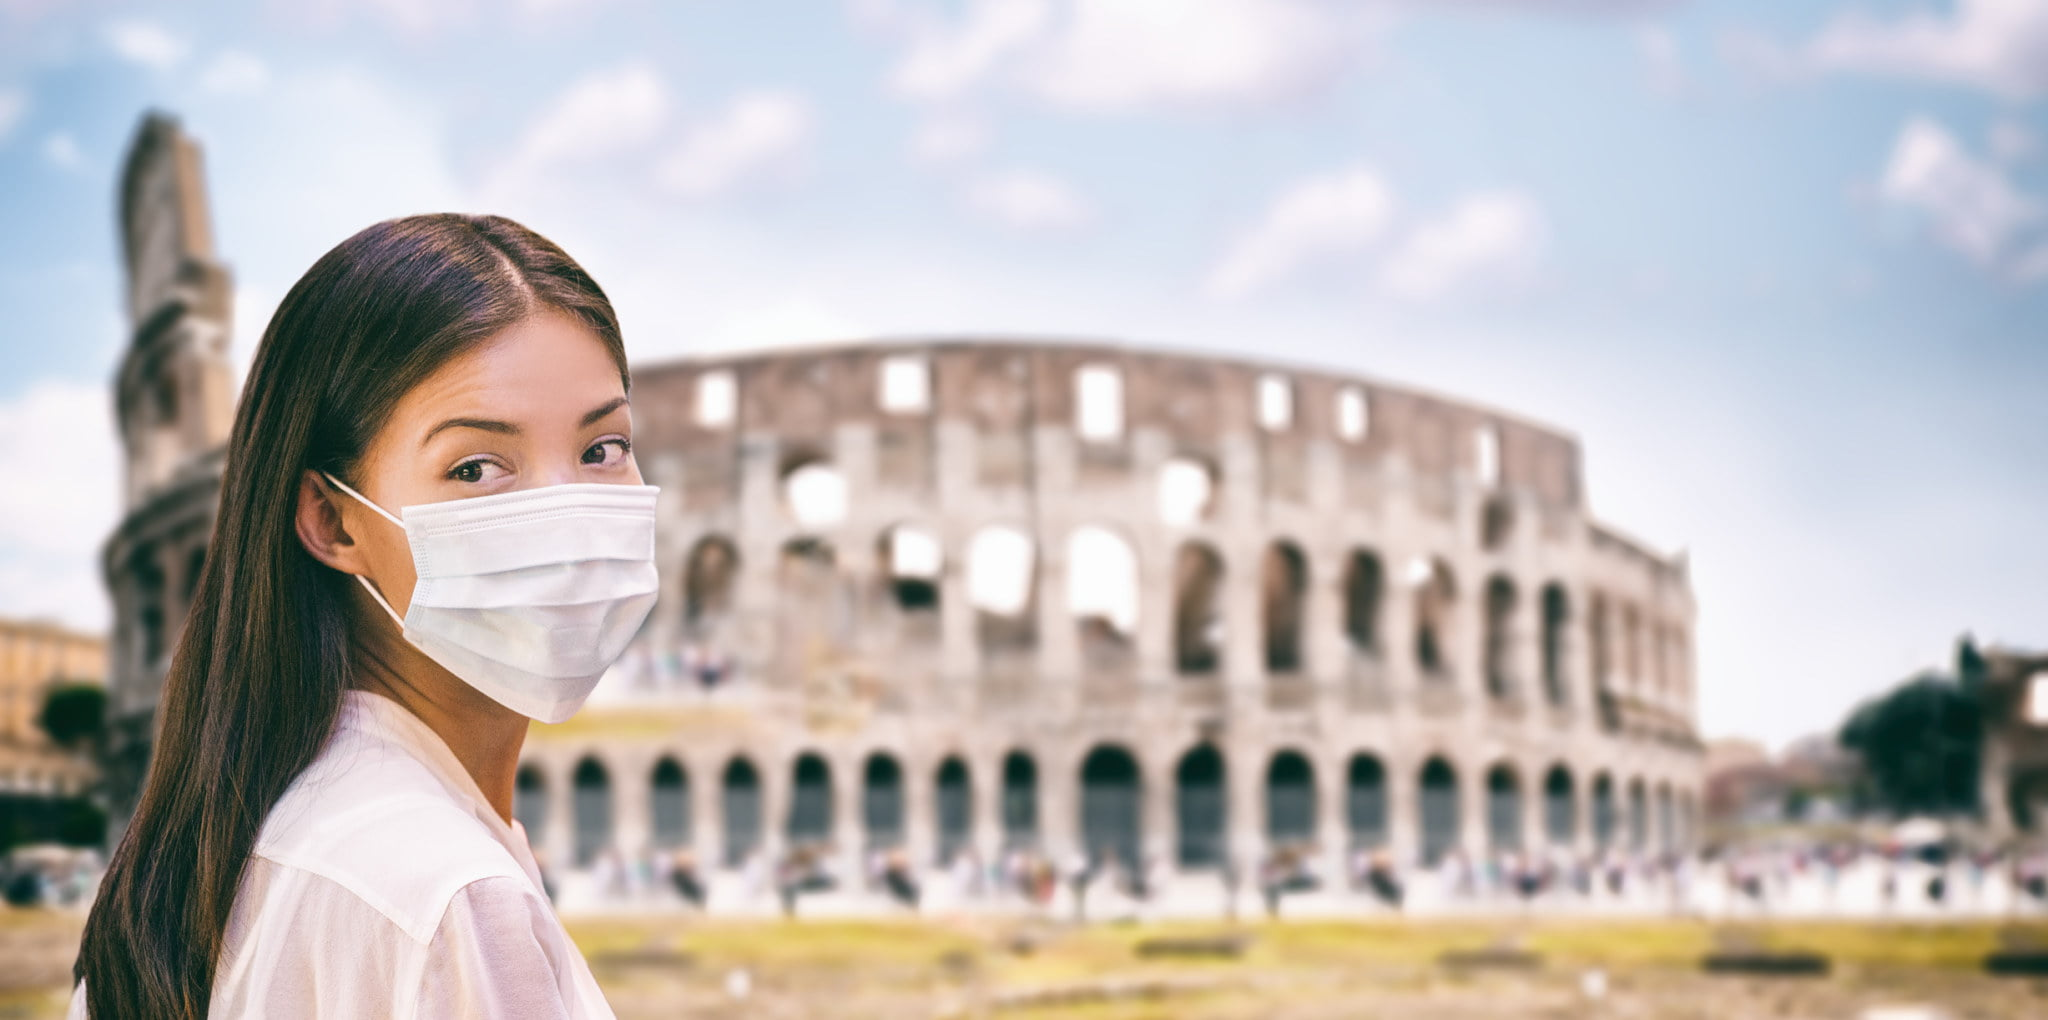 Italy Switches Sides Again: Country Now Fighting with Coronavirus